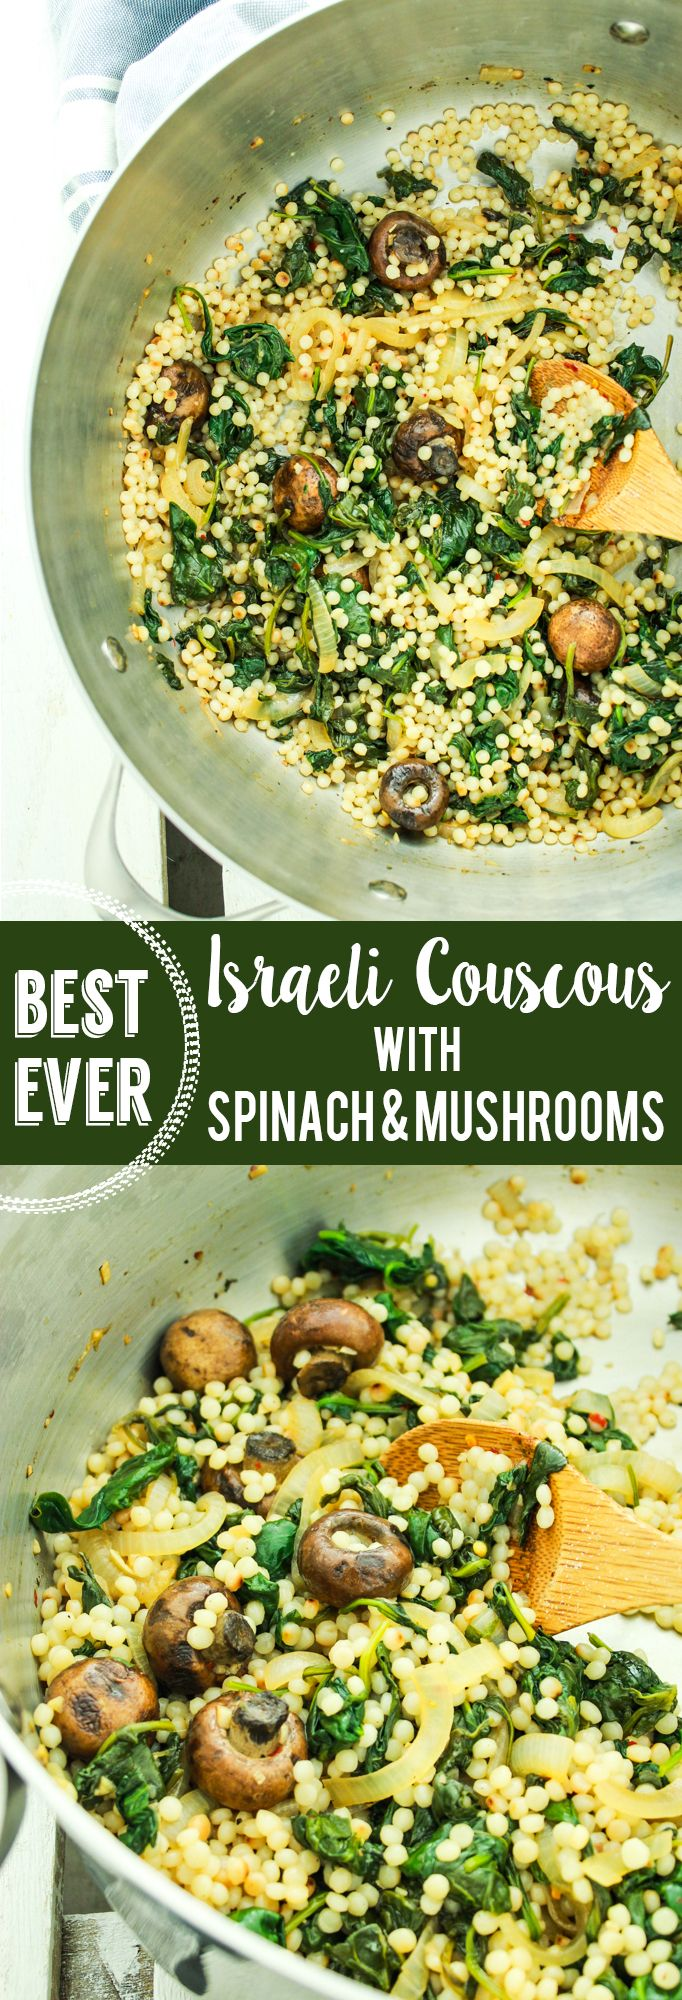 Israeli Couscous with Spinach and Mushrooms – Love this dish for a quick, easy dinner. It's on the table in less than 25 minutes and it saves great for leftovers and meal prep.